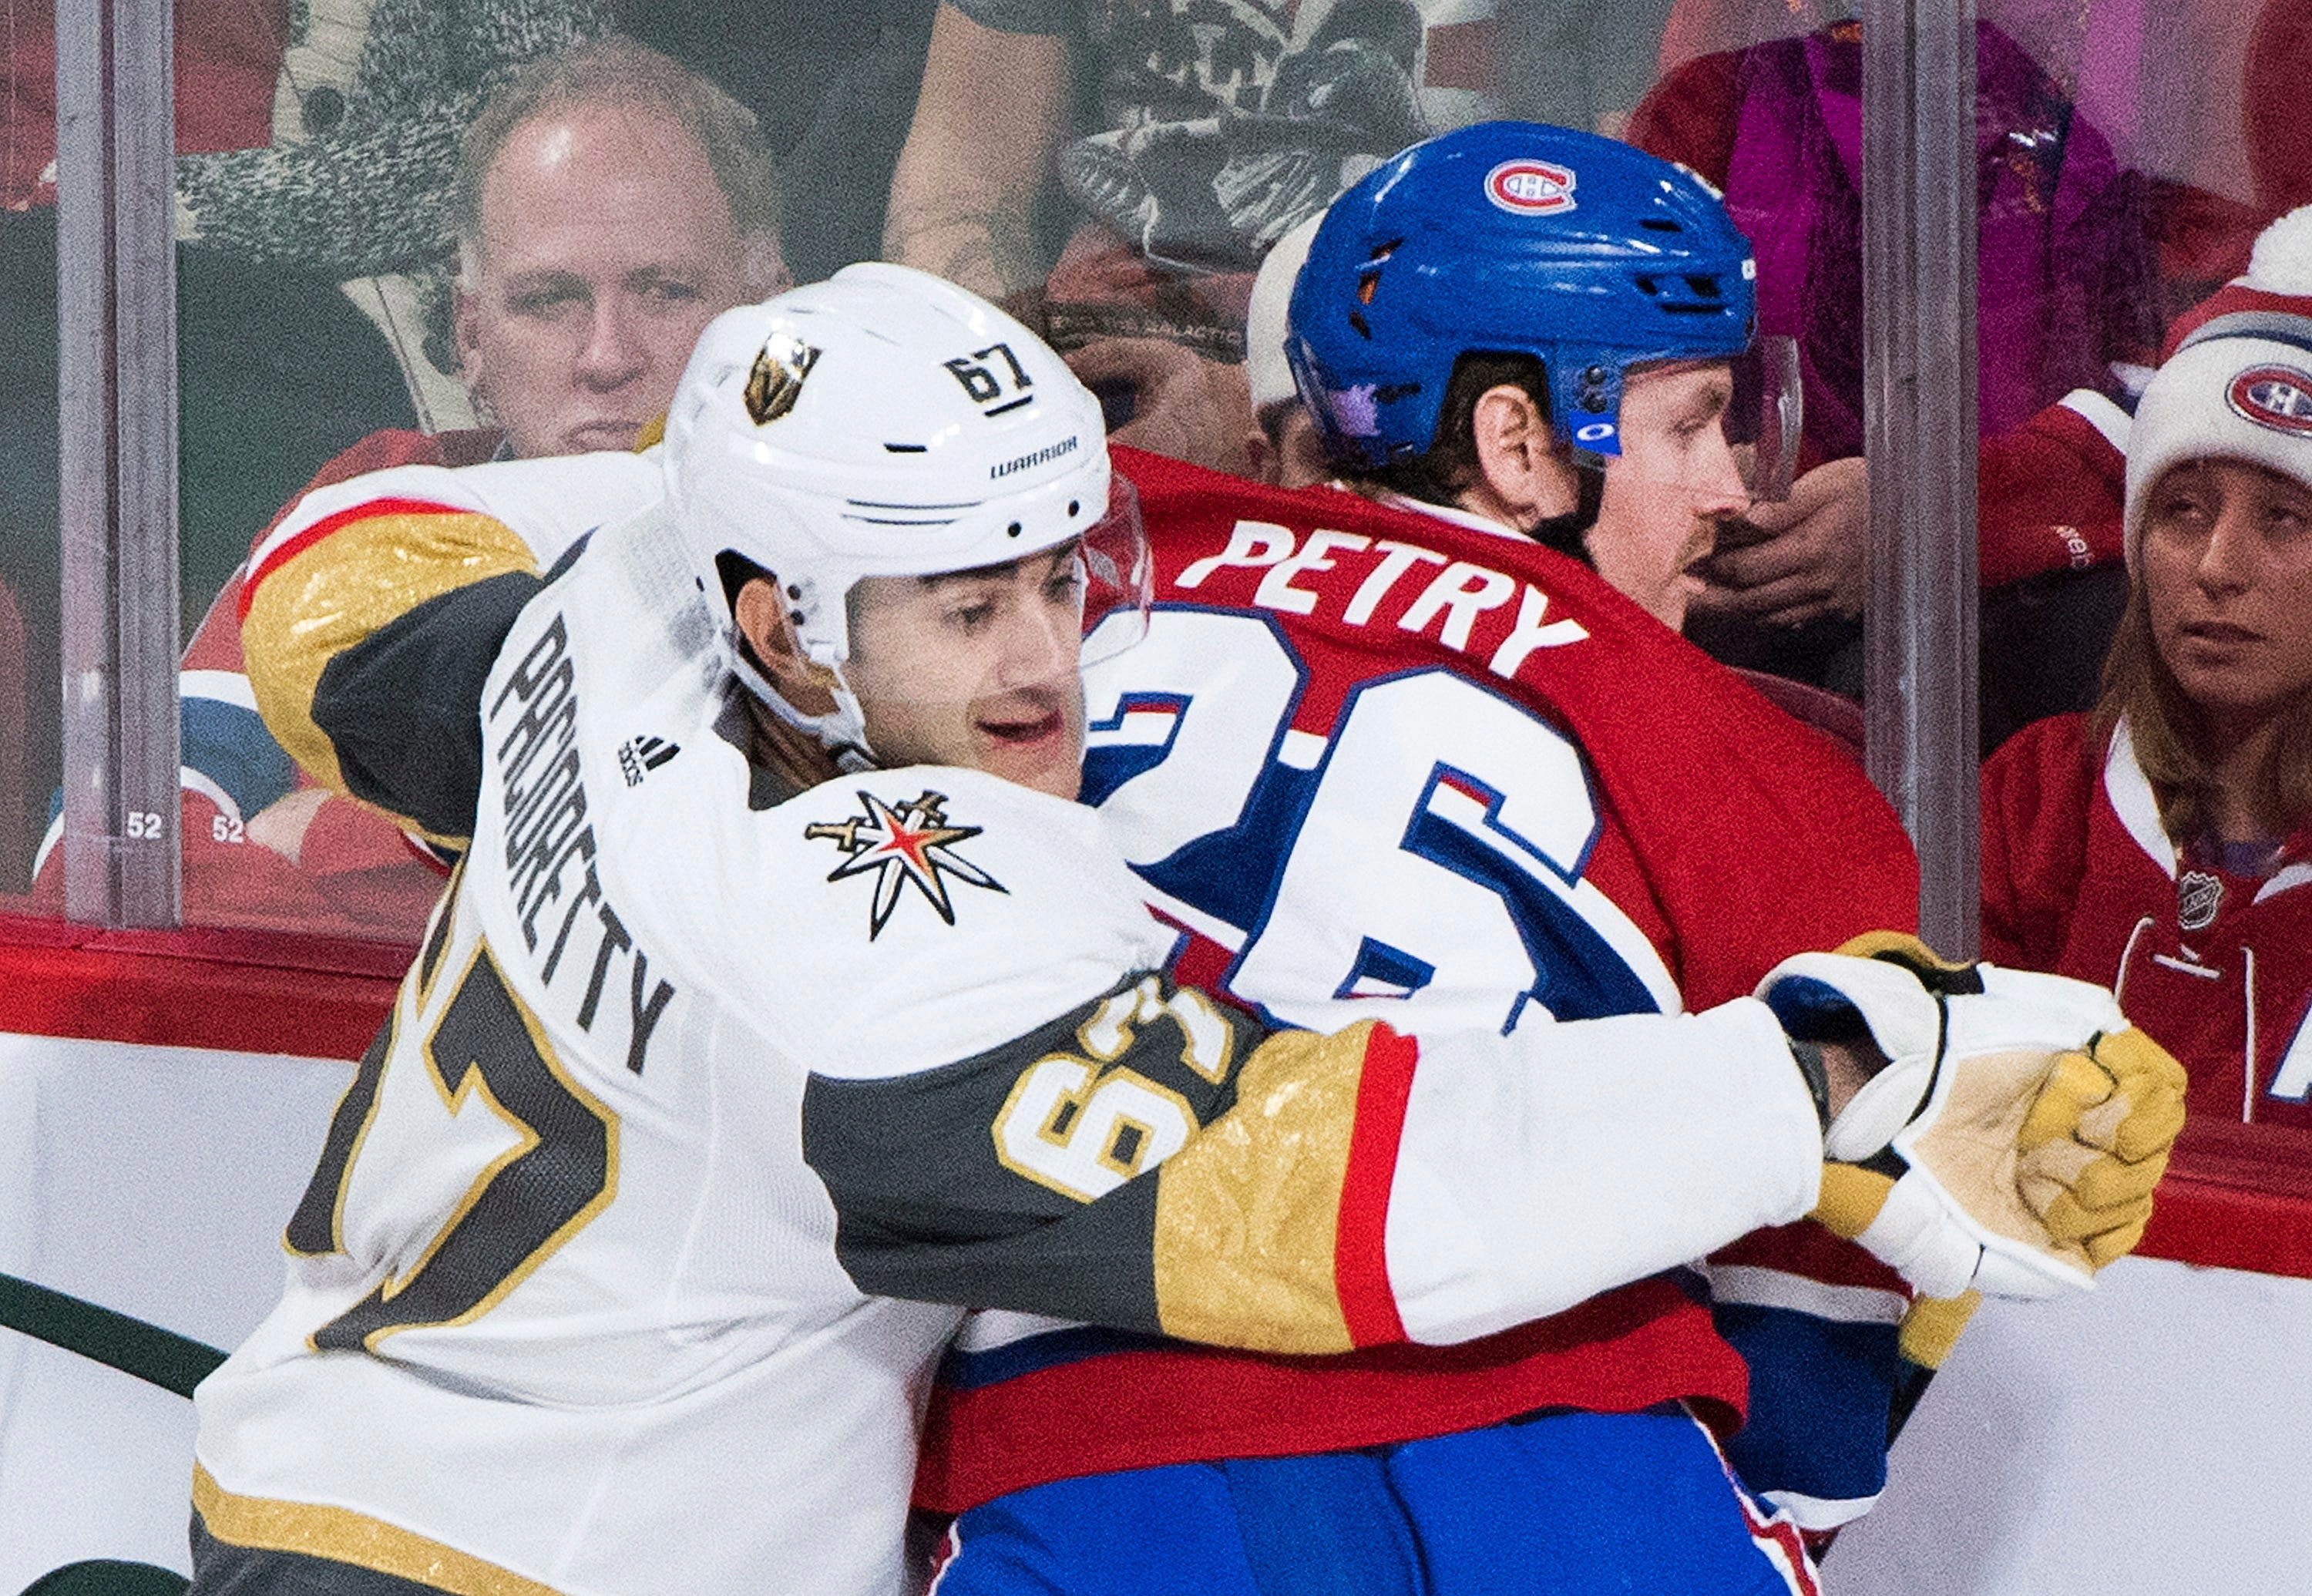 Canadiens beat Golden Knights to spoil Pacioretty's return